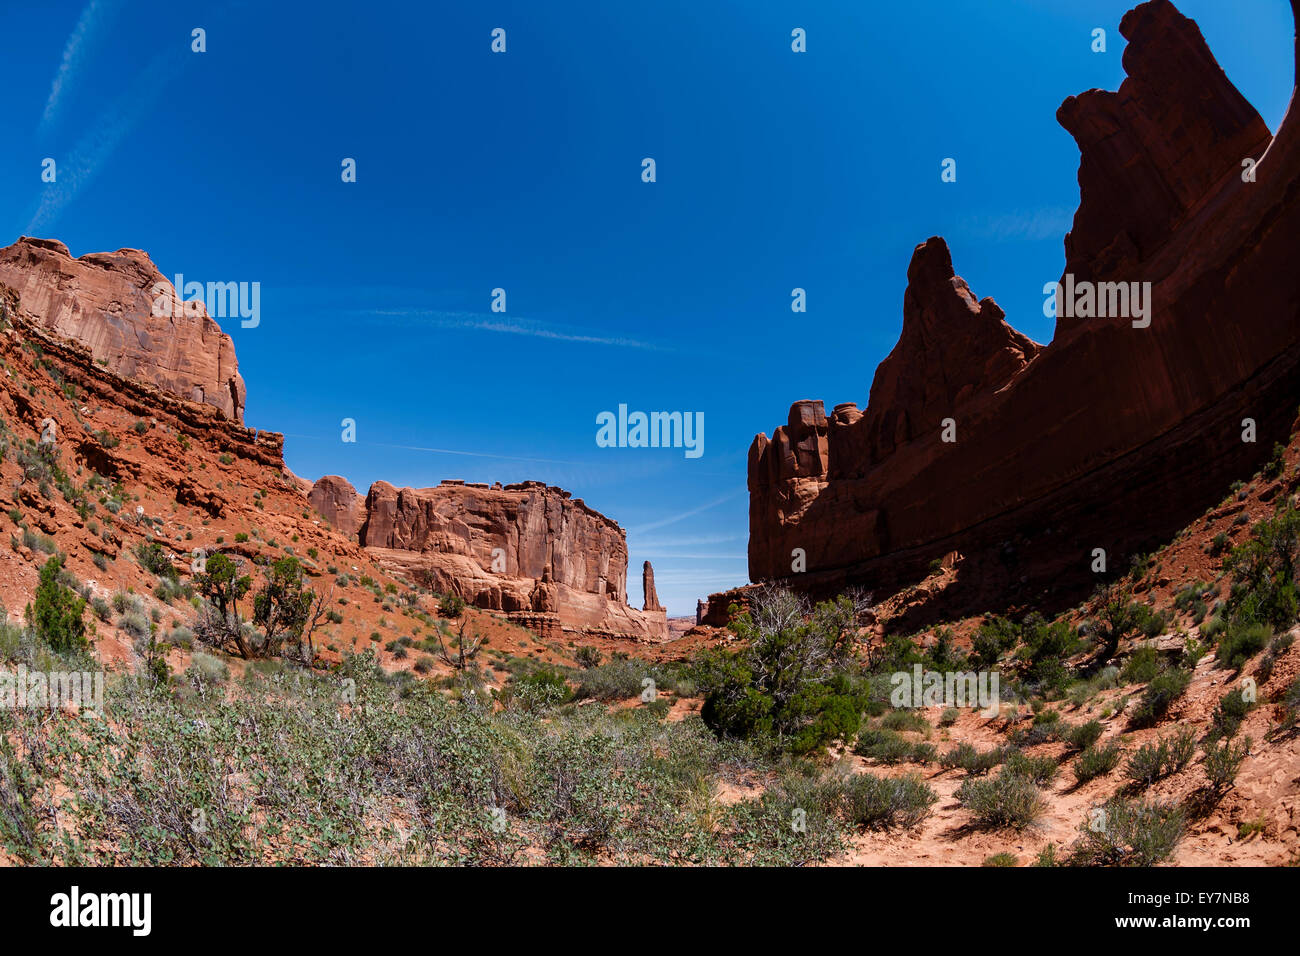 A series of rock fins that have broken out of the earth, Arches national Park, Moab, Utah, USA - Stock Image